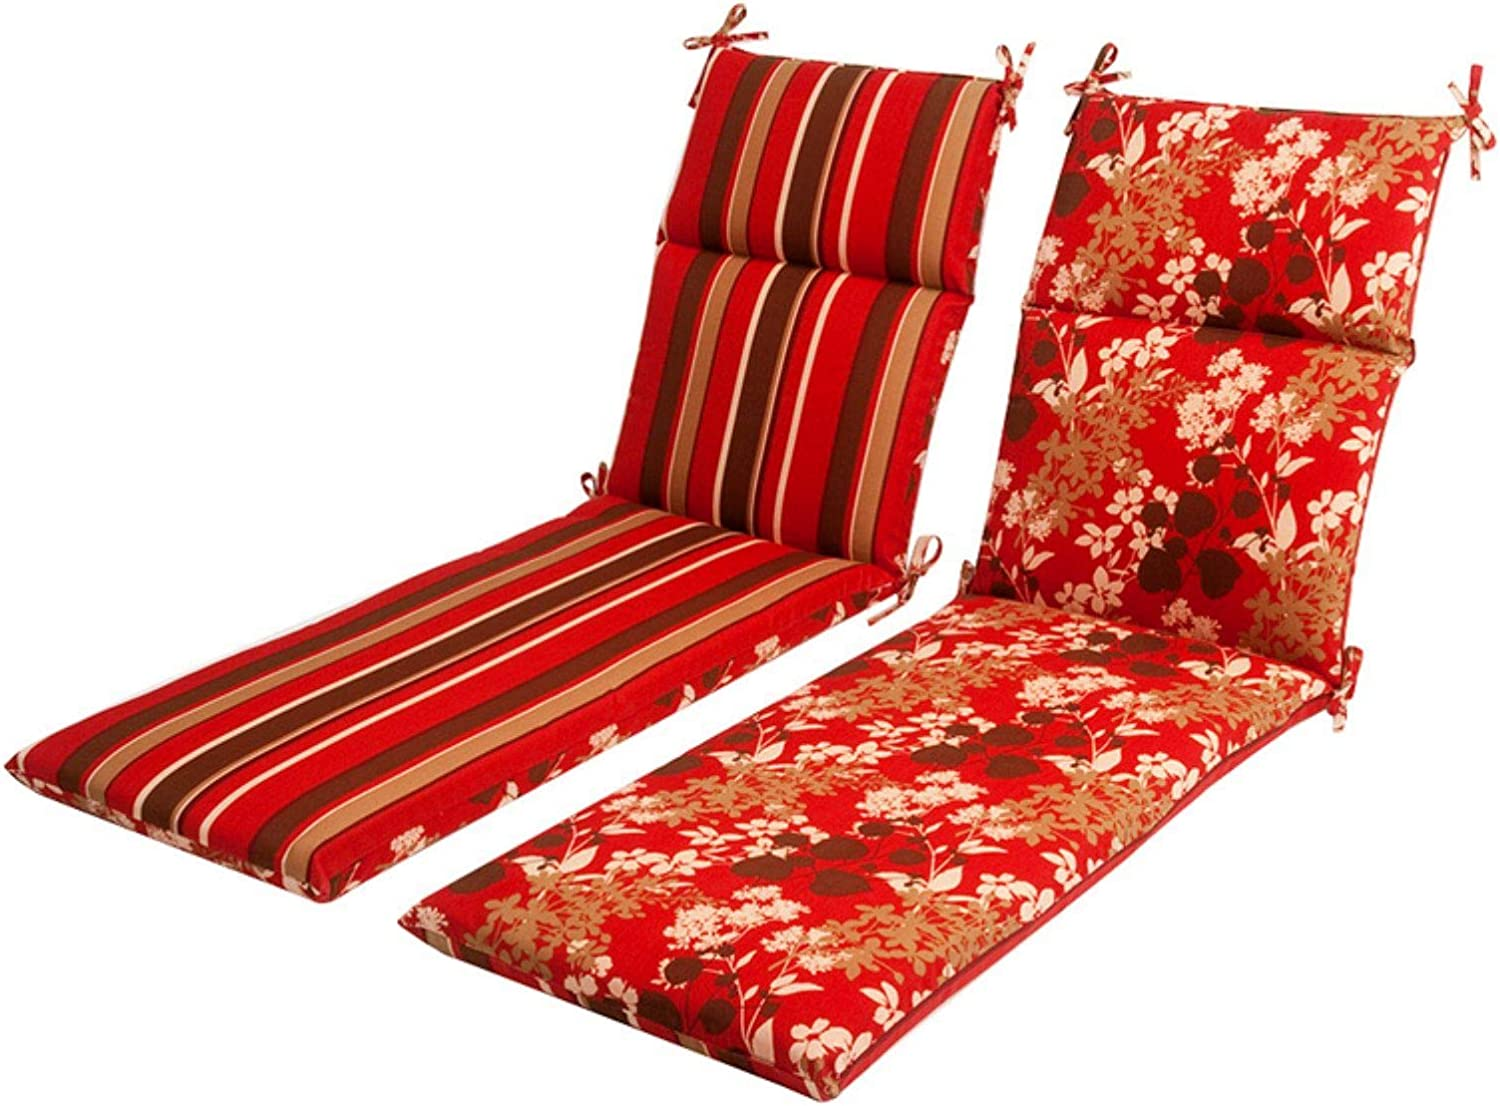 BRT-Style Reversible Cheap mail order specialty store outdoor chaise lounge cush- 3 21 x i Inexpensive 72.5